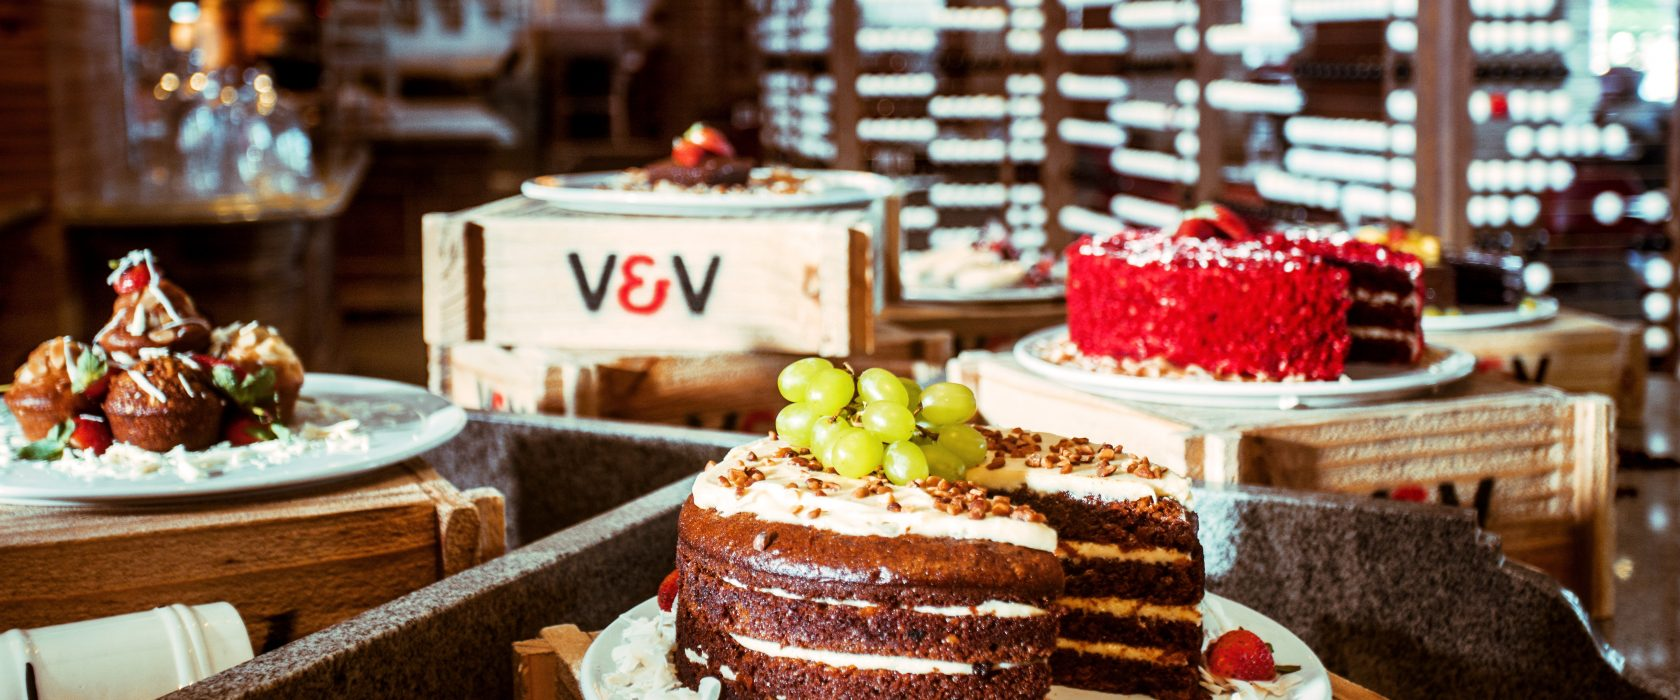 Vigor & Verve Cake selection